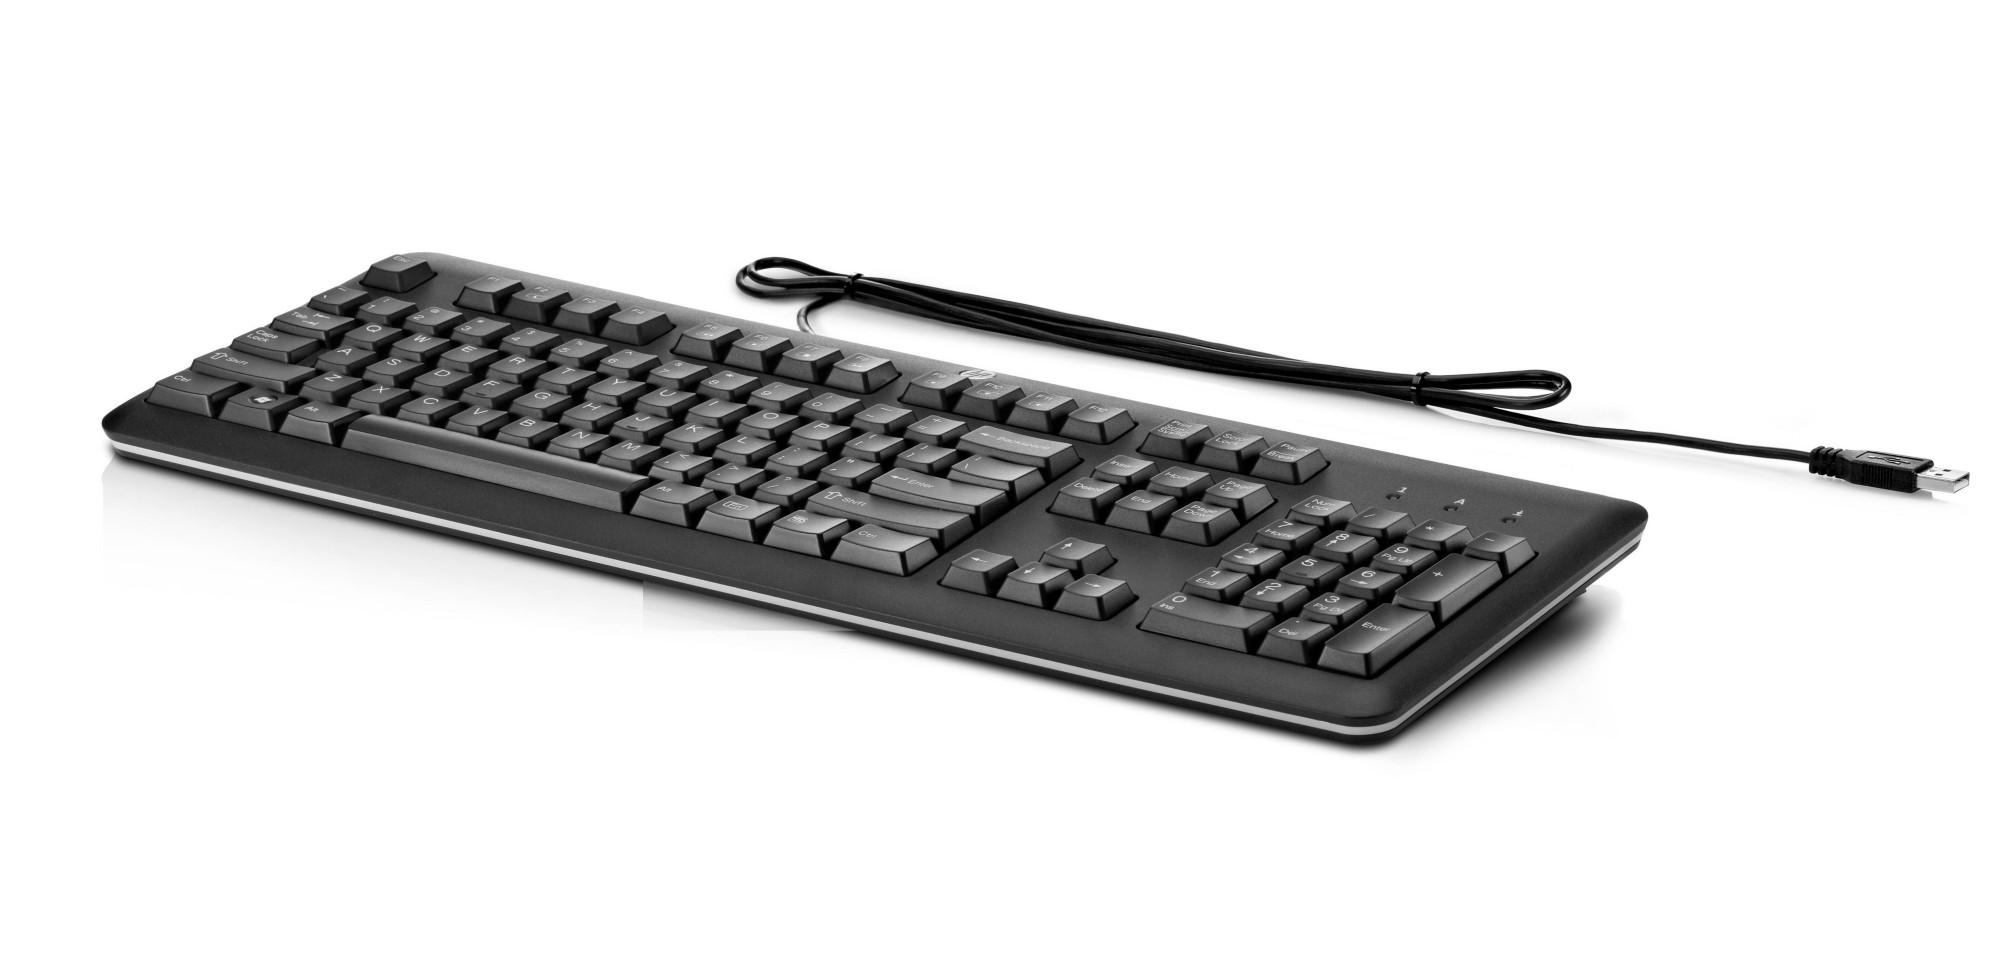 HP QY776AT USB Black keyboard